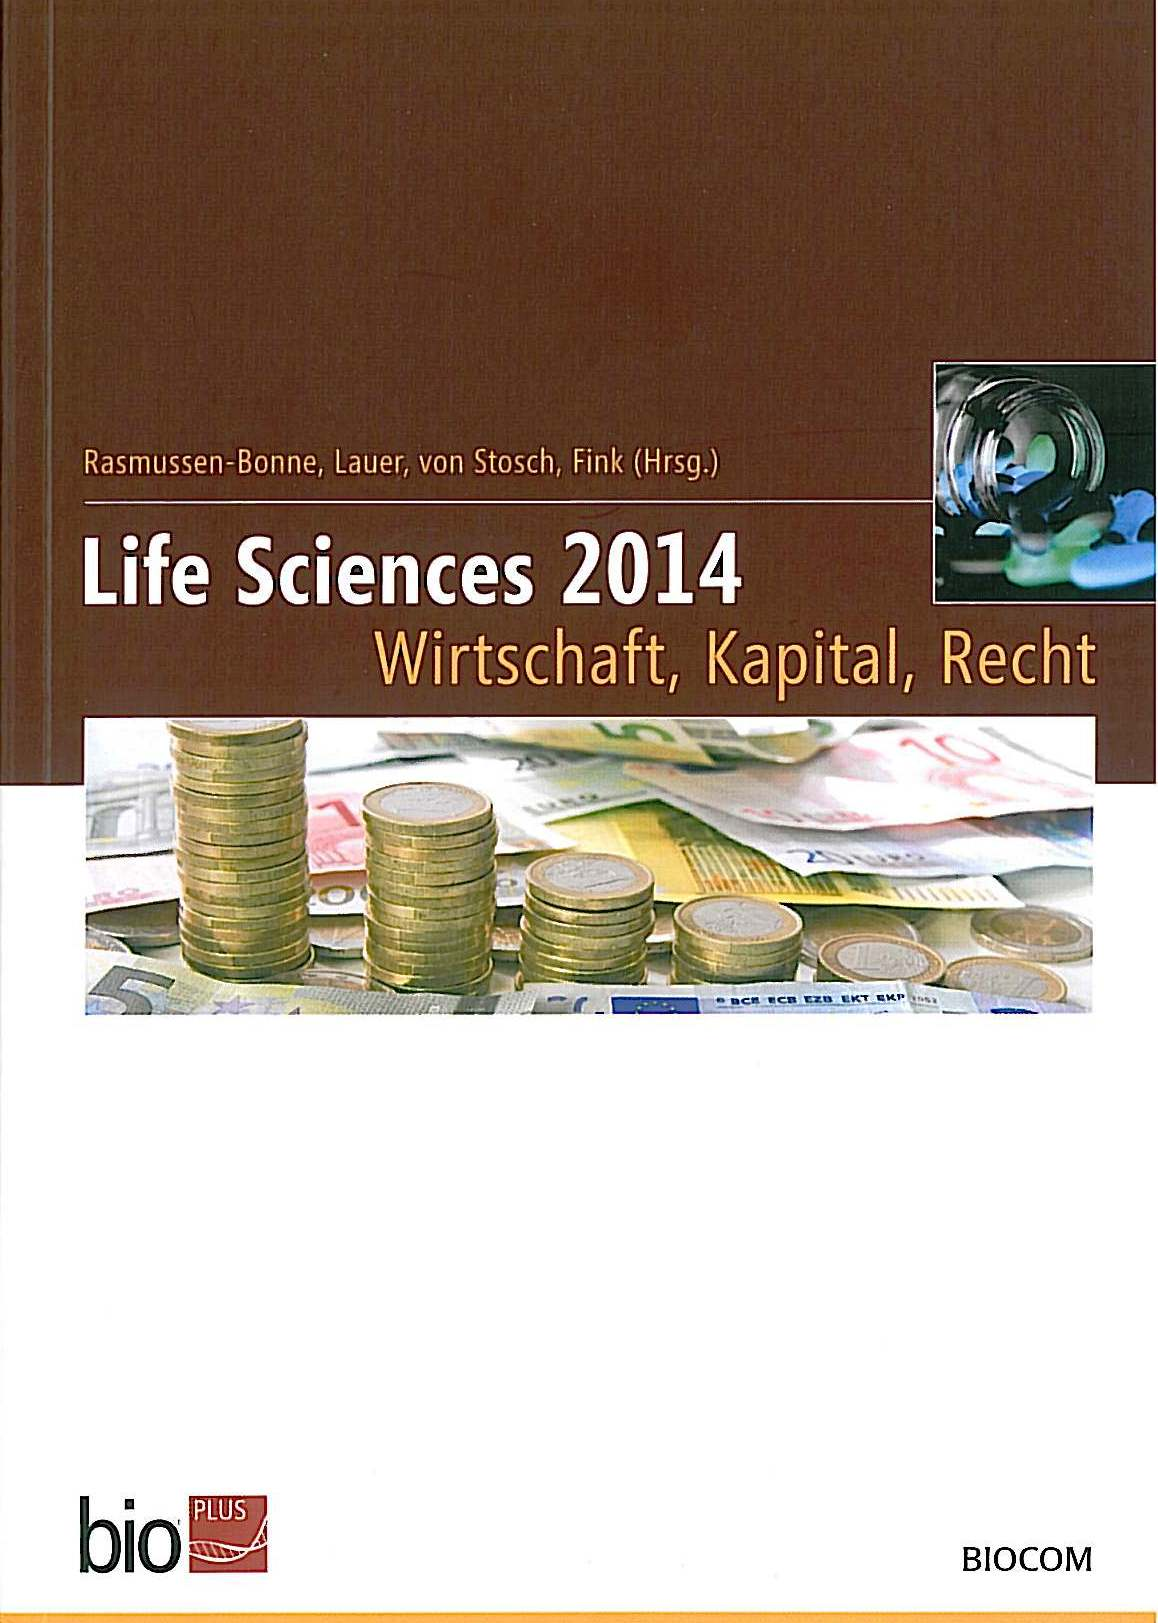 2014-04-11Life Sciences 2014